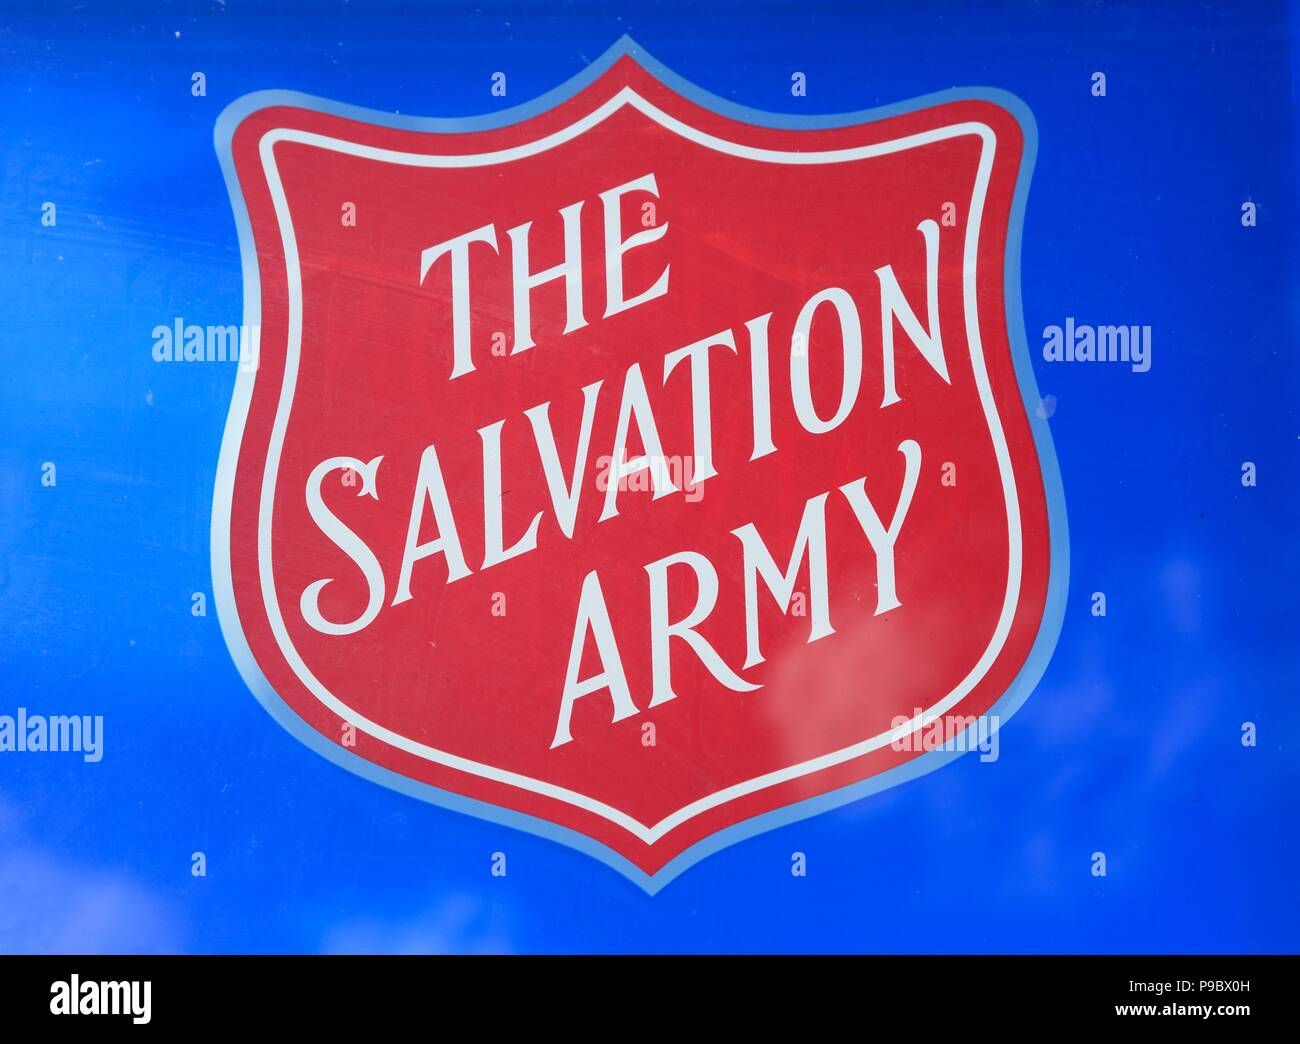 The Salvation Army shield against a blue background to the rear at the National Memorial Arboretum, Alrewas, Staffordshire, England, UK, Western Europ - Stock Image